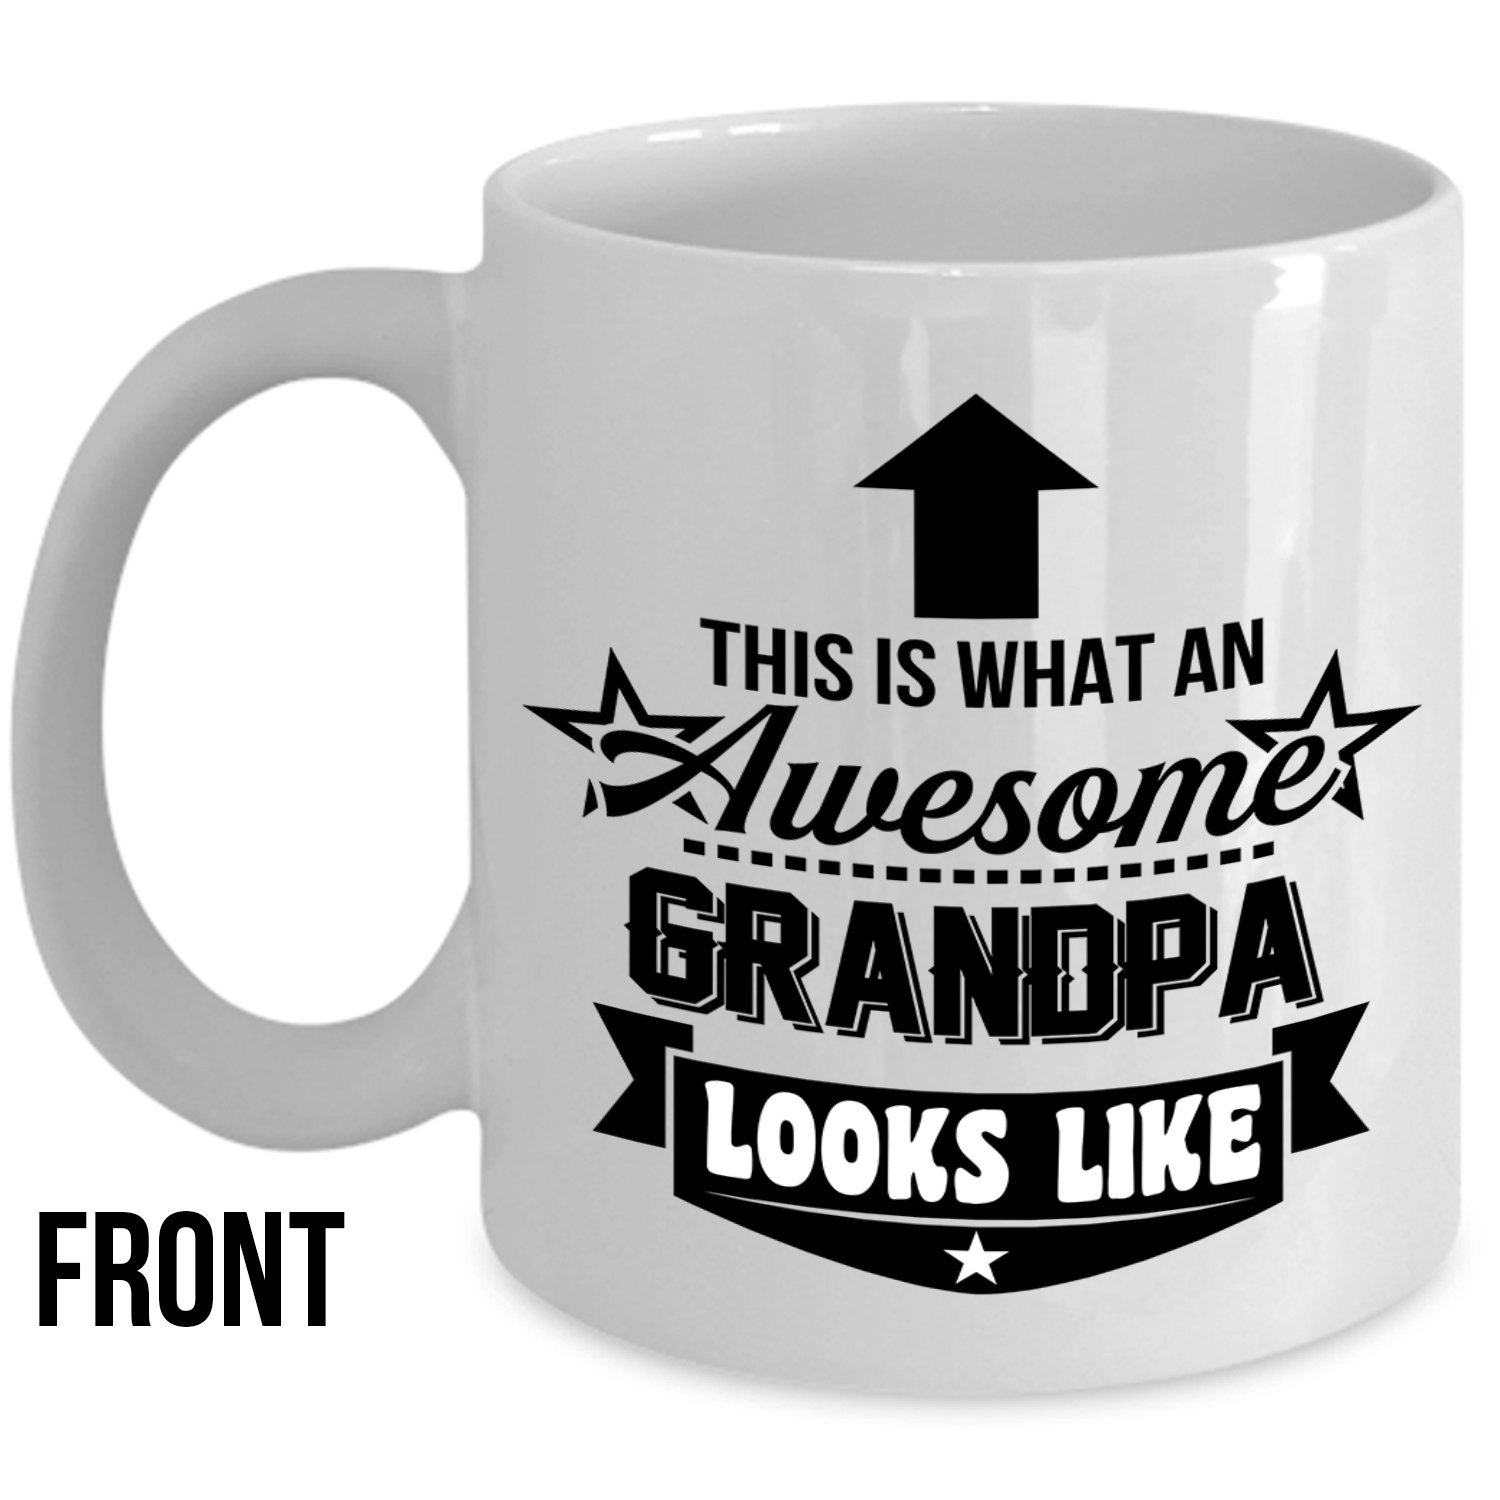 This Is What An Awesome Grandpa Looks Like Mug Best